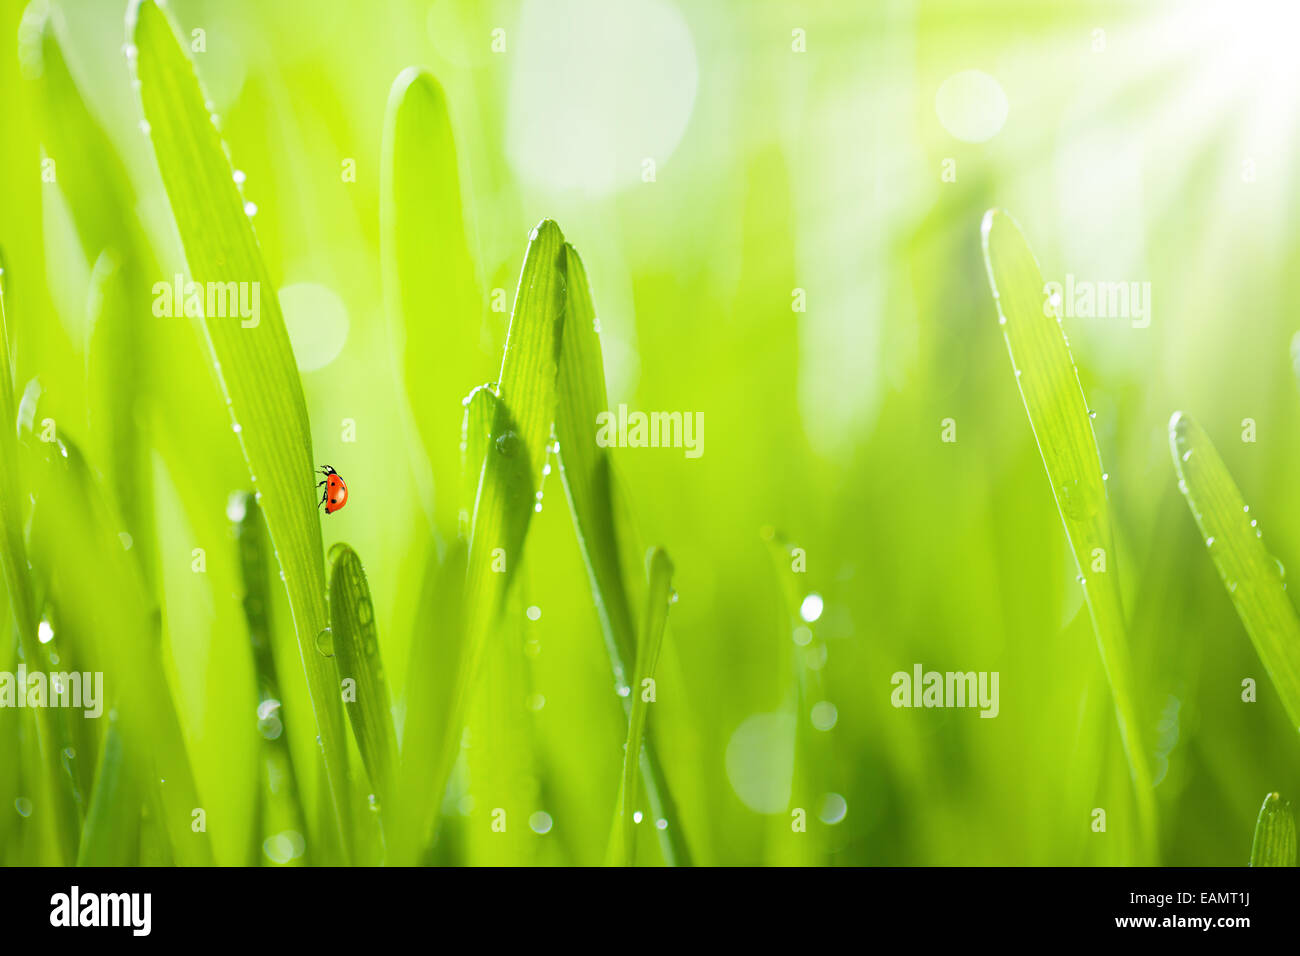 Macro photo of fresh grass with drops of water. Low depth of focus - Stock Image